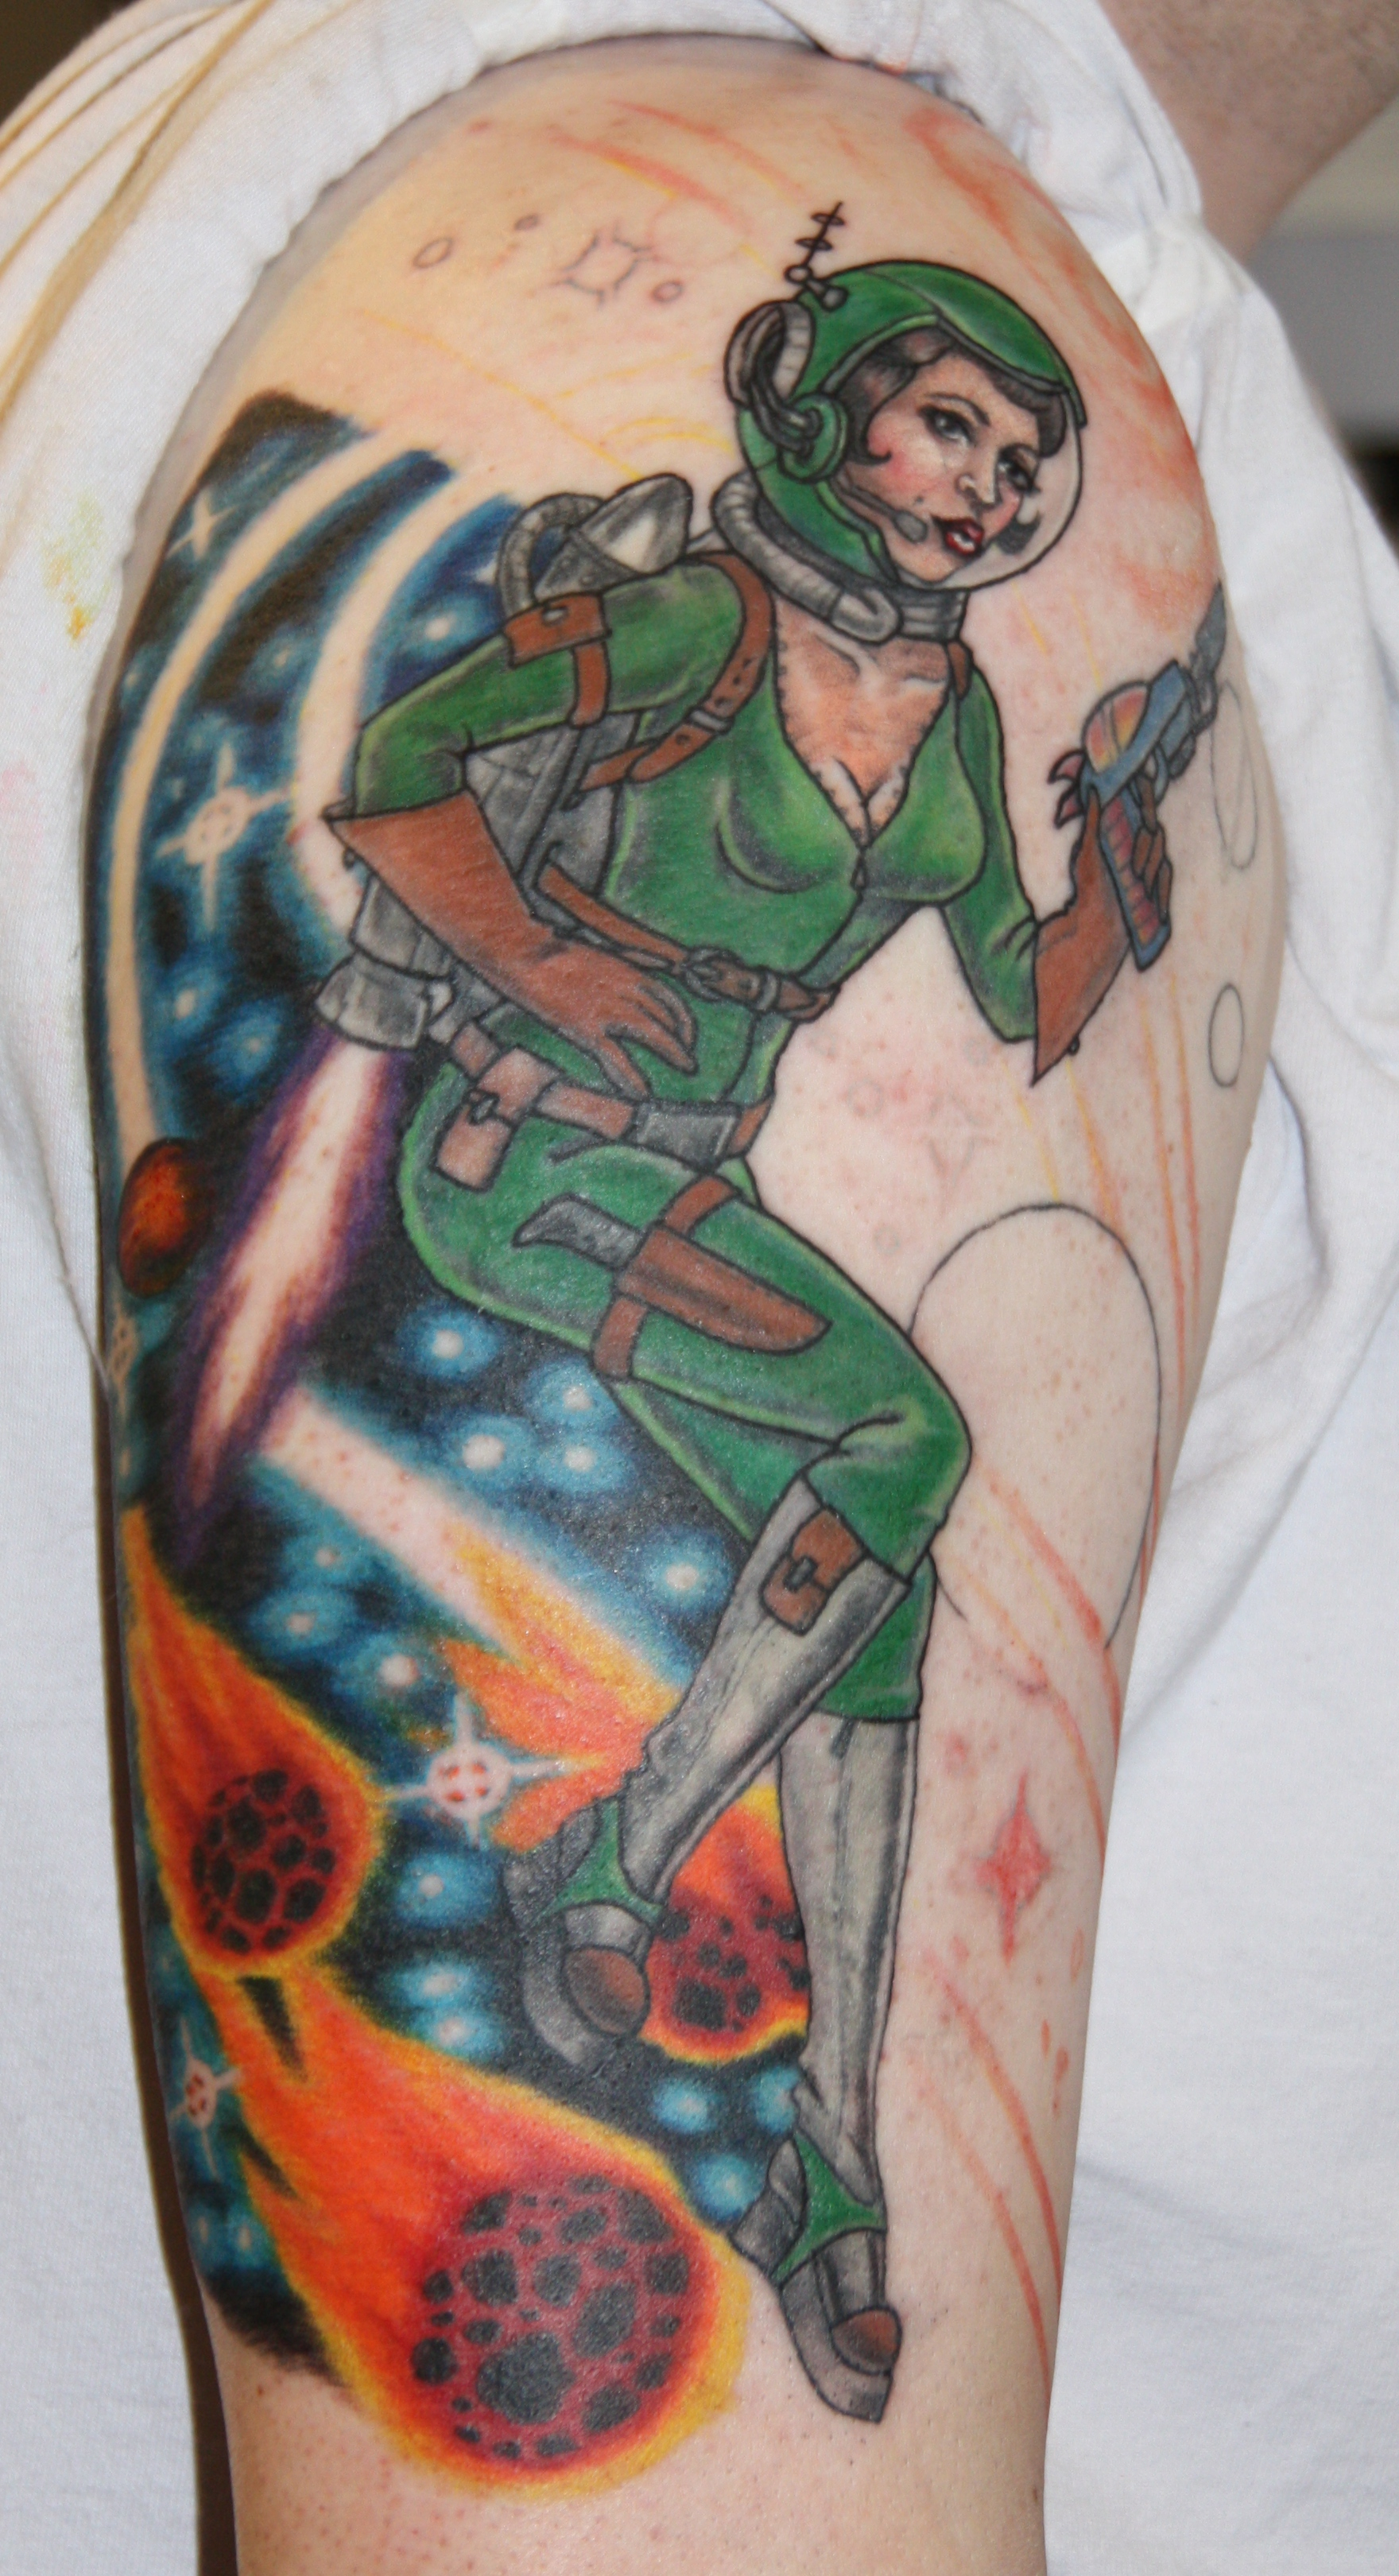 WIP Space Pin Up Tattoo by Kennebel